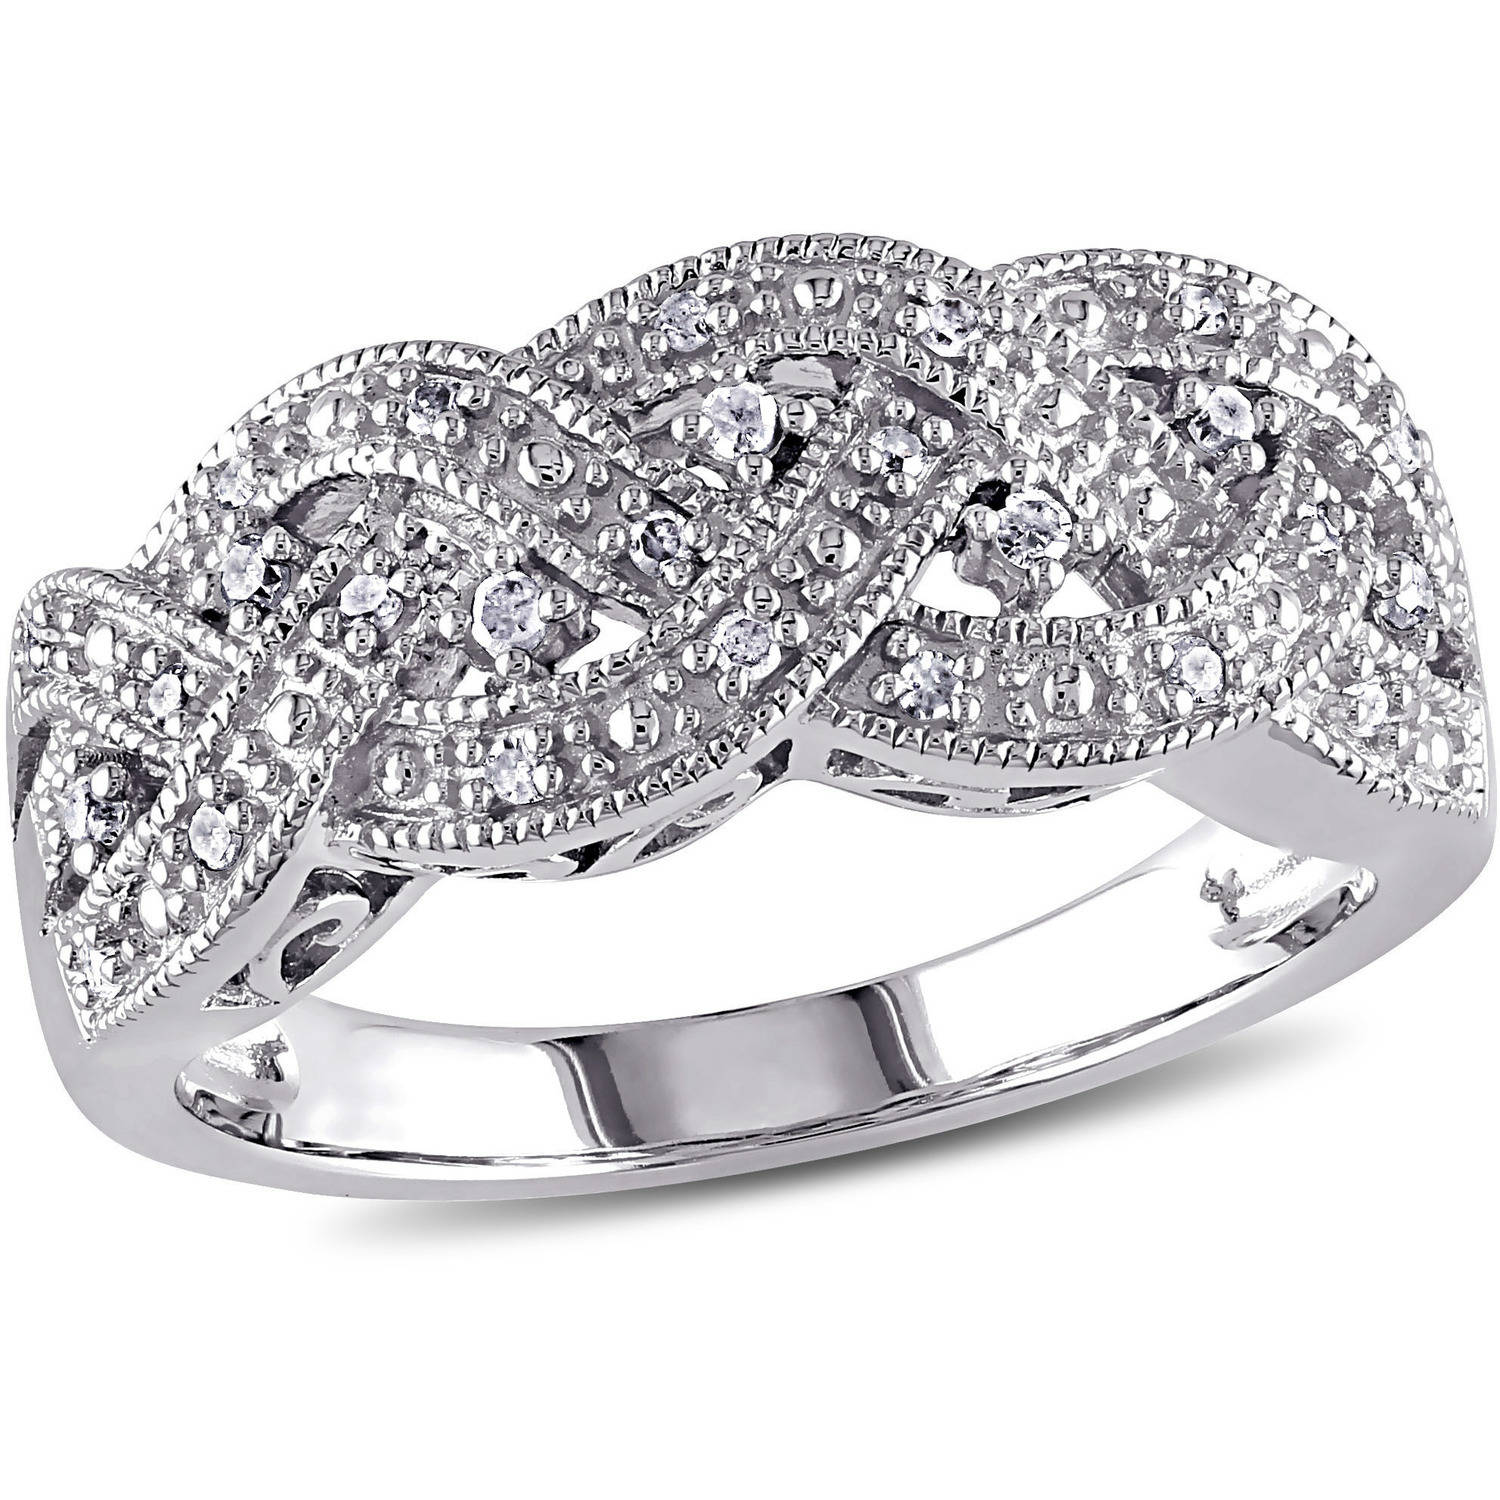 8 Carat Tw Diamond Sterling Silver Braid Ring  Walmart